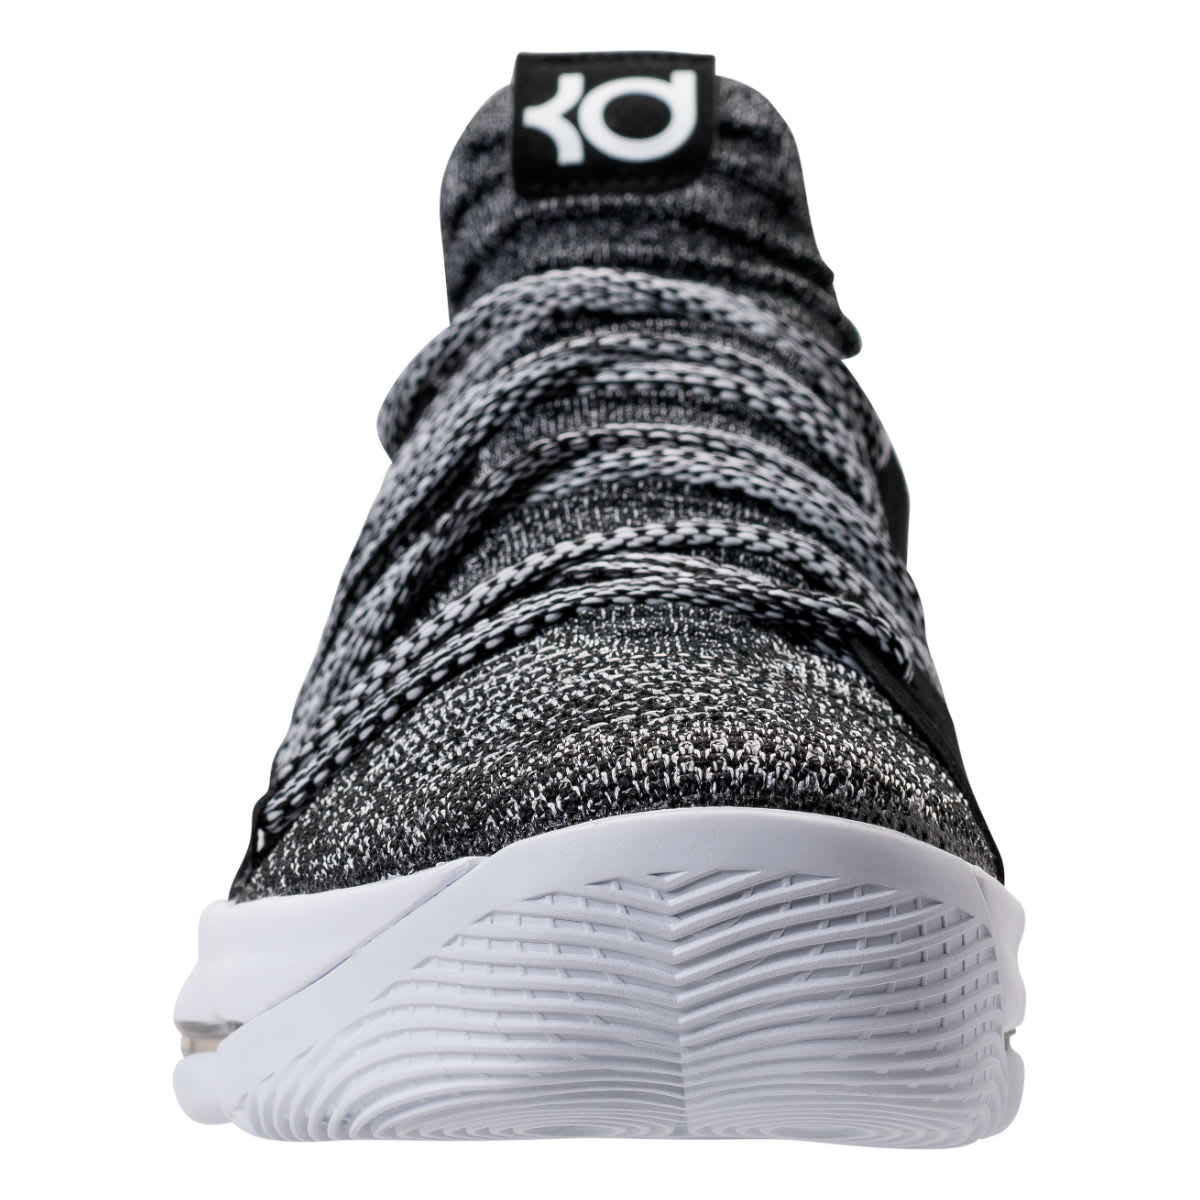 Nike KD 10 Oreo Release Date Front 897815-001